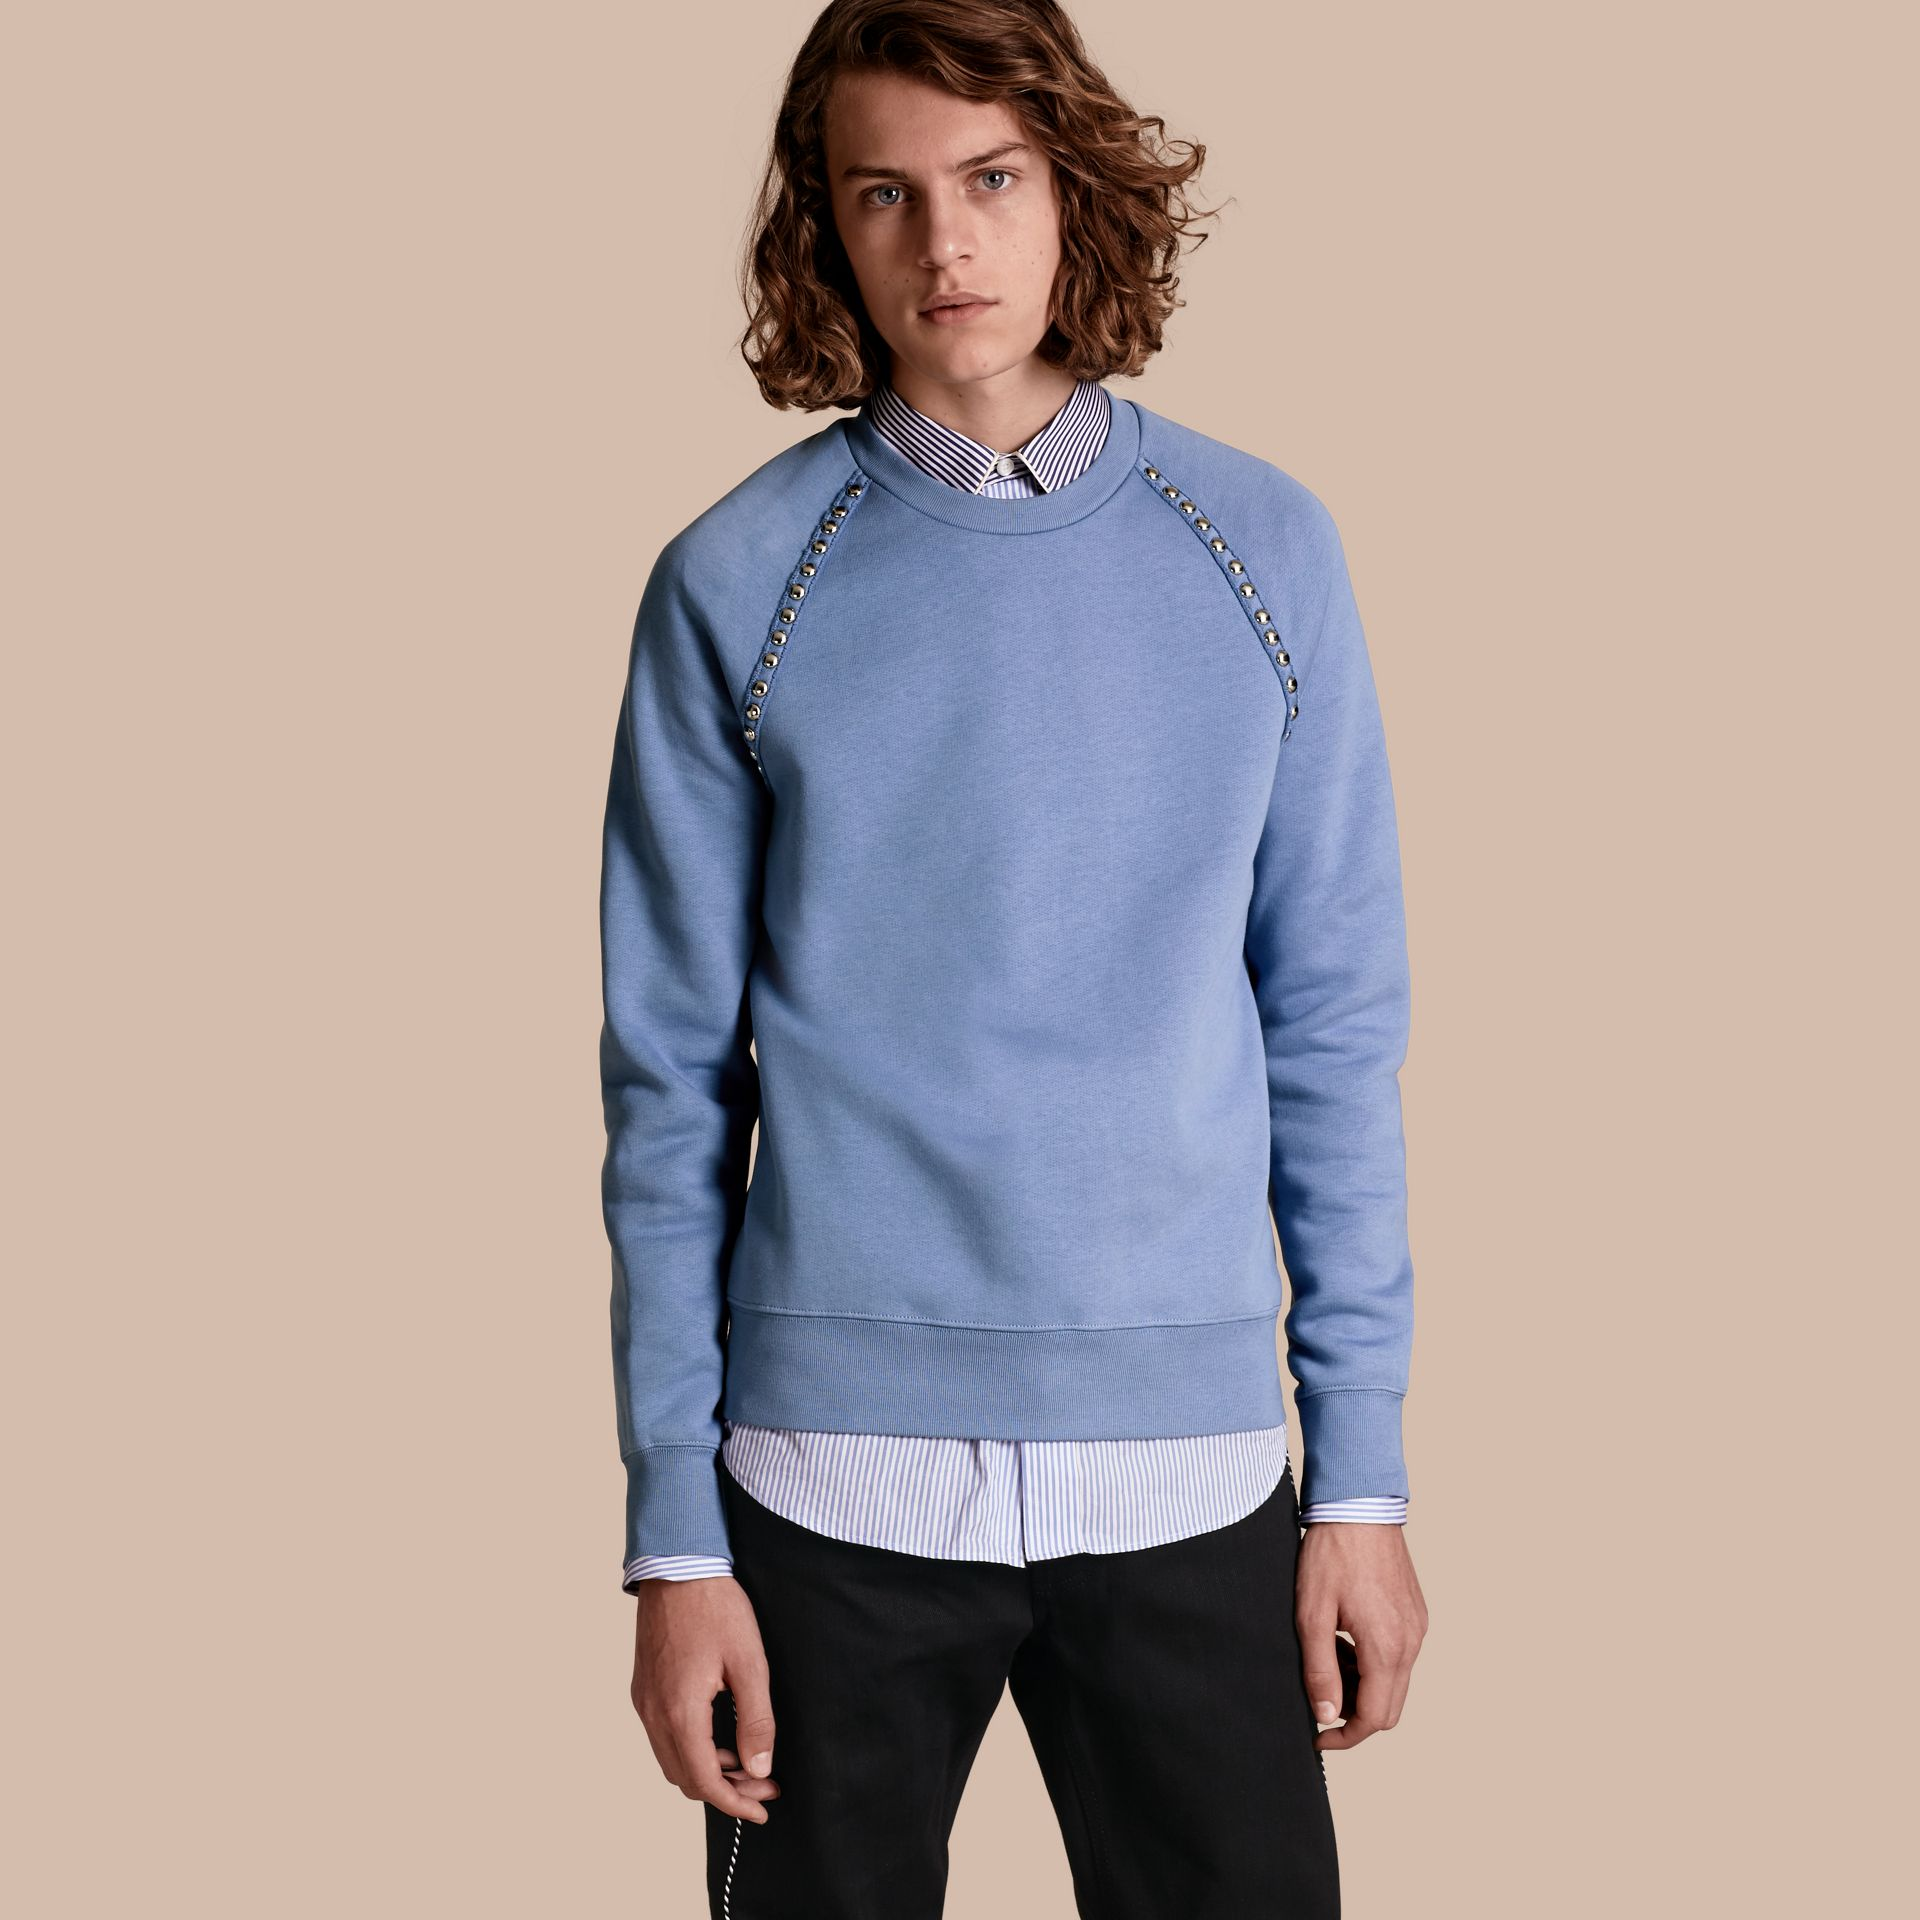 Stud Detail Cotton-blend Sweatshirt - gallery image 1